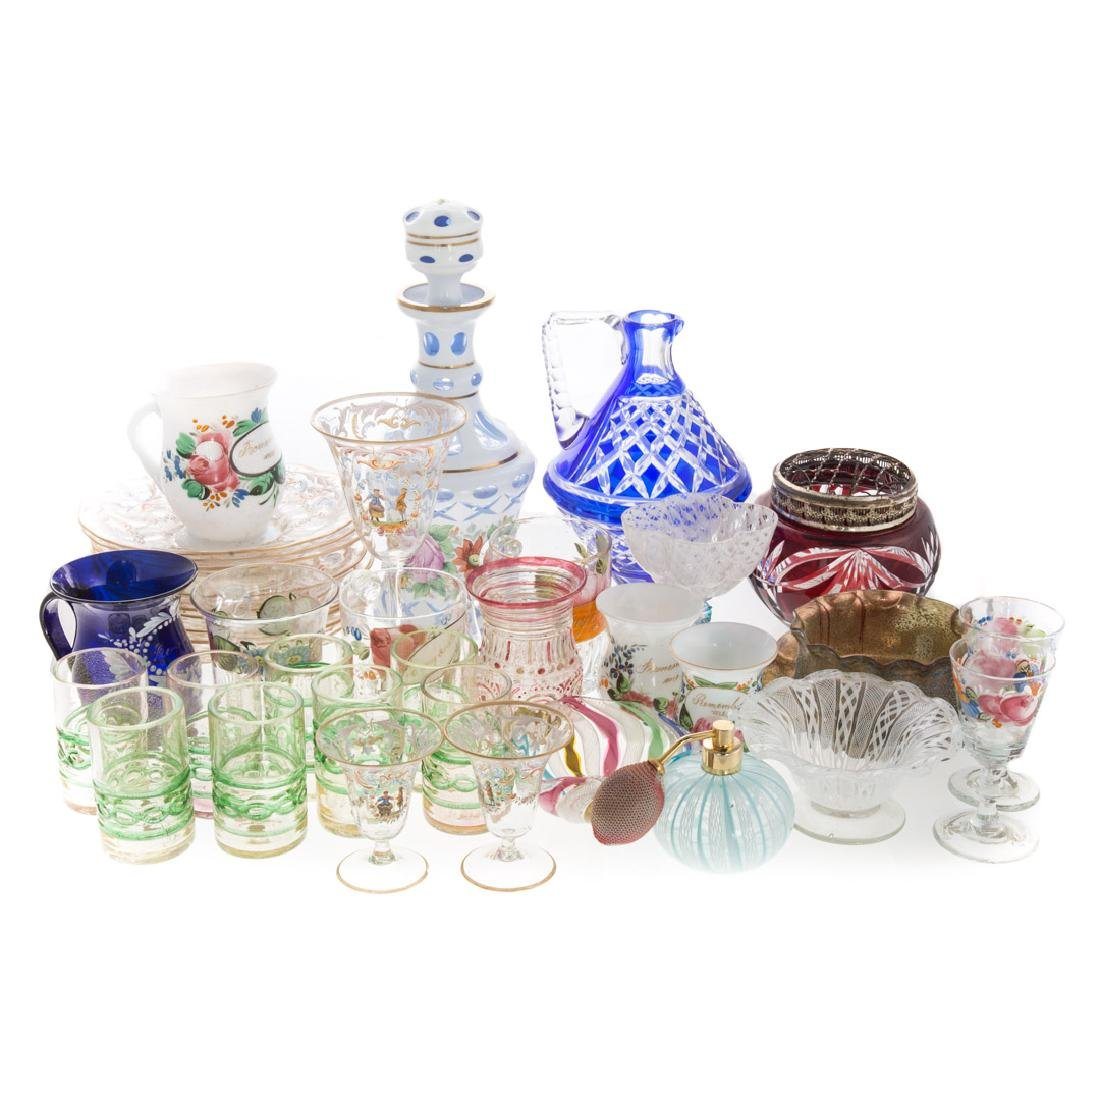 36 pieces of assorted Continental glass